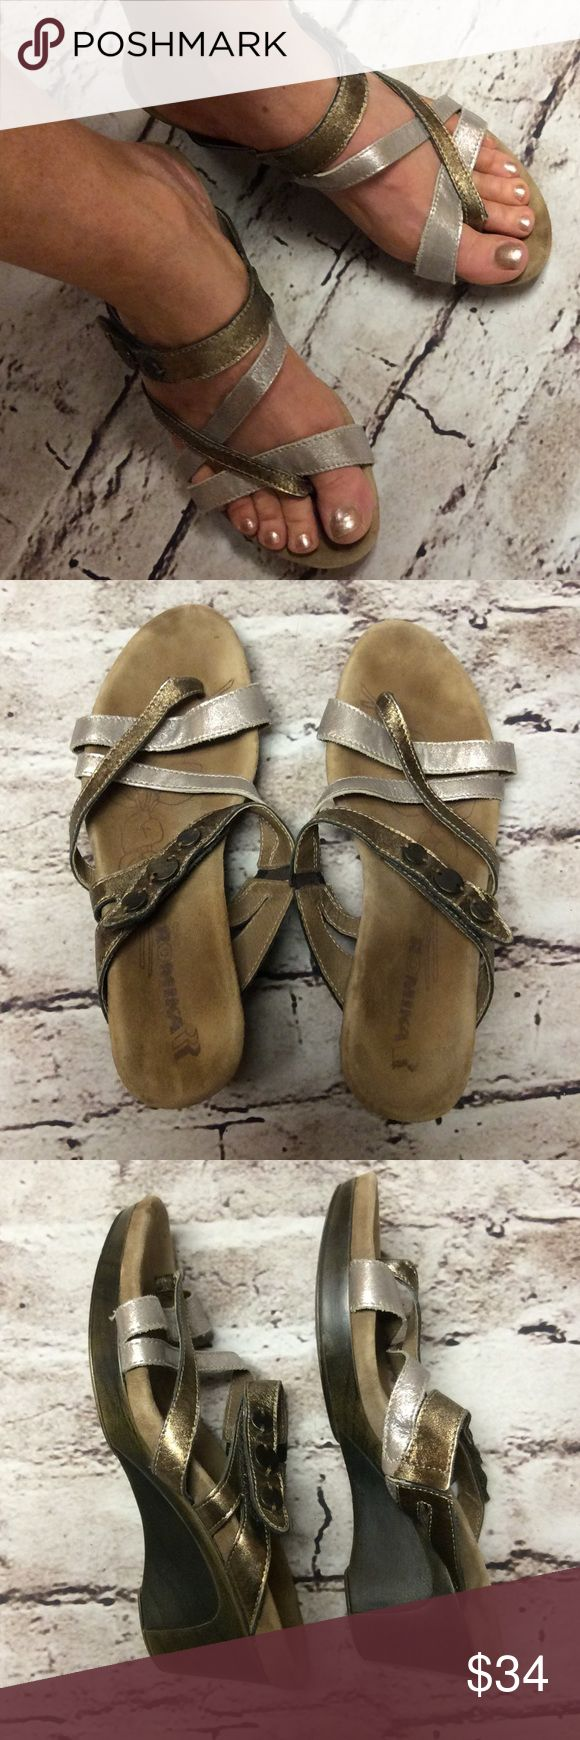 """ROMIKA STRAPPY WEDGE SANDALS/SHOES These are so comfortable it feels like you're walking on air. The footbed shows footprints due to the soft suede leather footbed. Heel 2.5"""". Gently used. 2-Tone gold and bronze with toe loop Romika Shoes Wedges"""